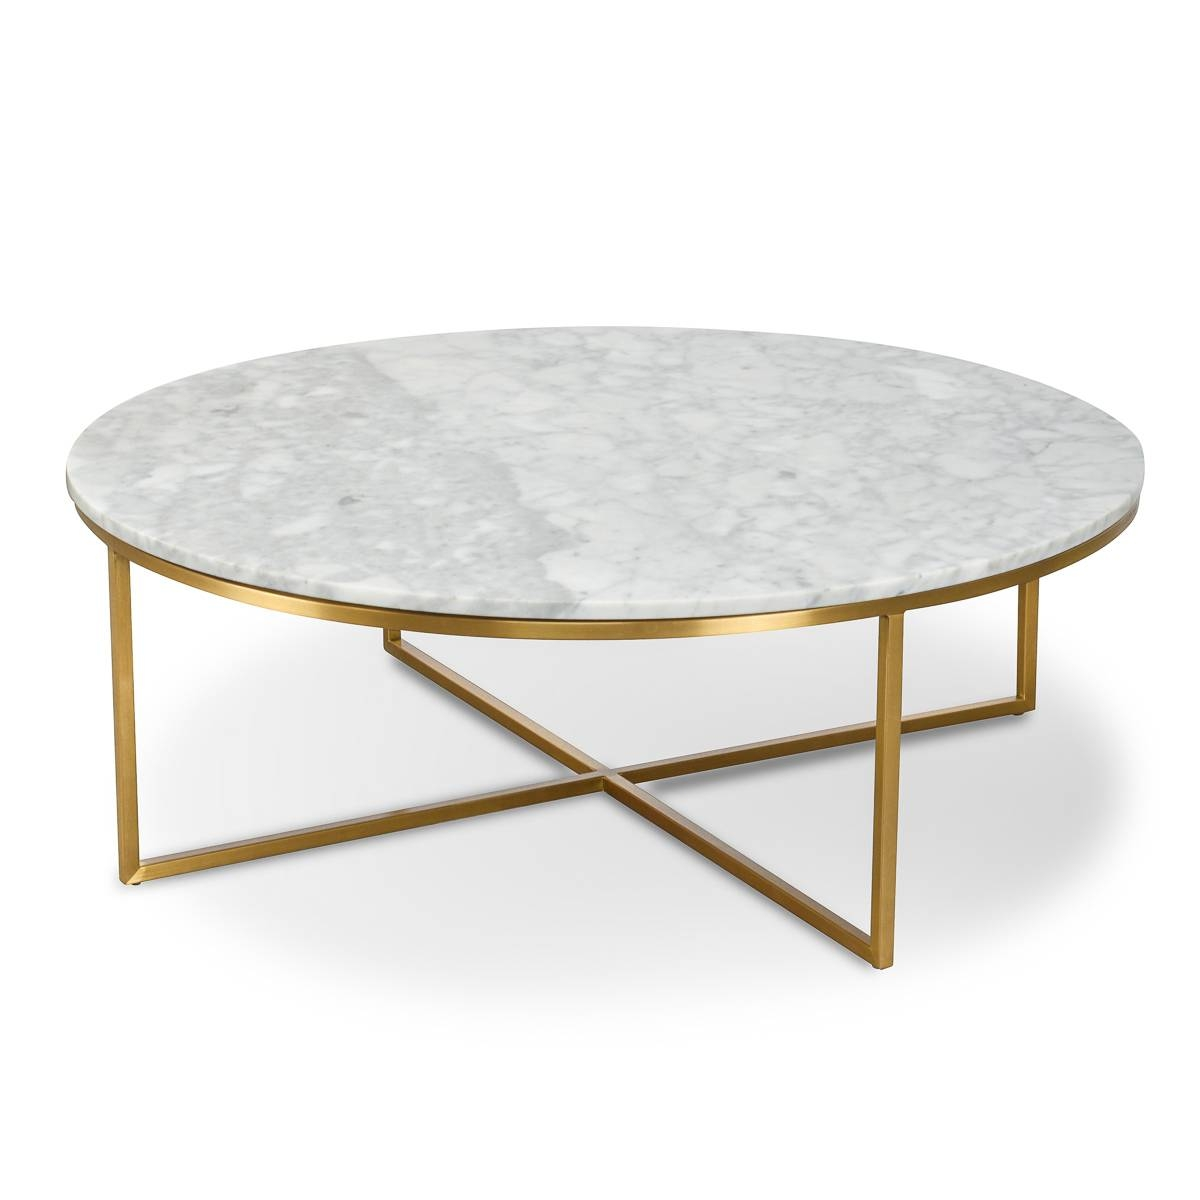 Lorenz Round Marble Coffee Table | Interior Secrets inside White Marble Coffee Tables (Image 17 of 30)